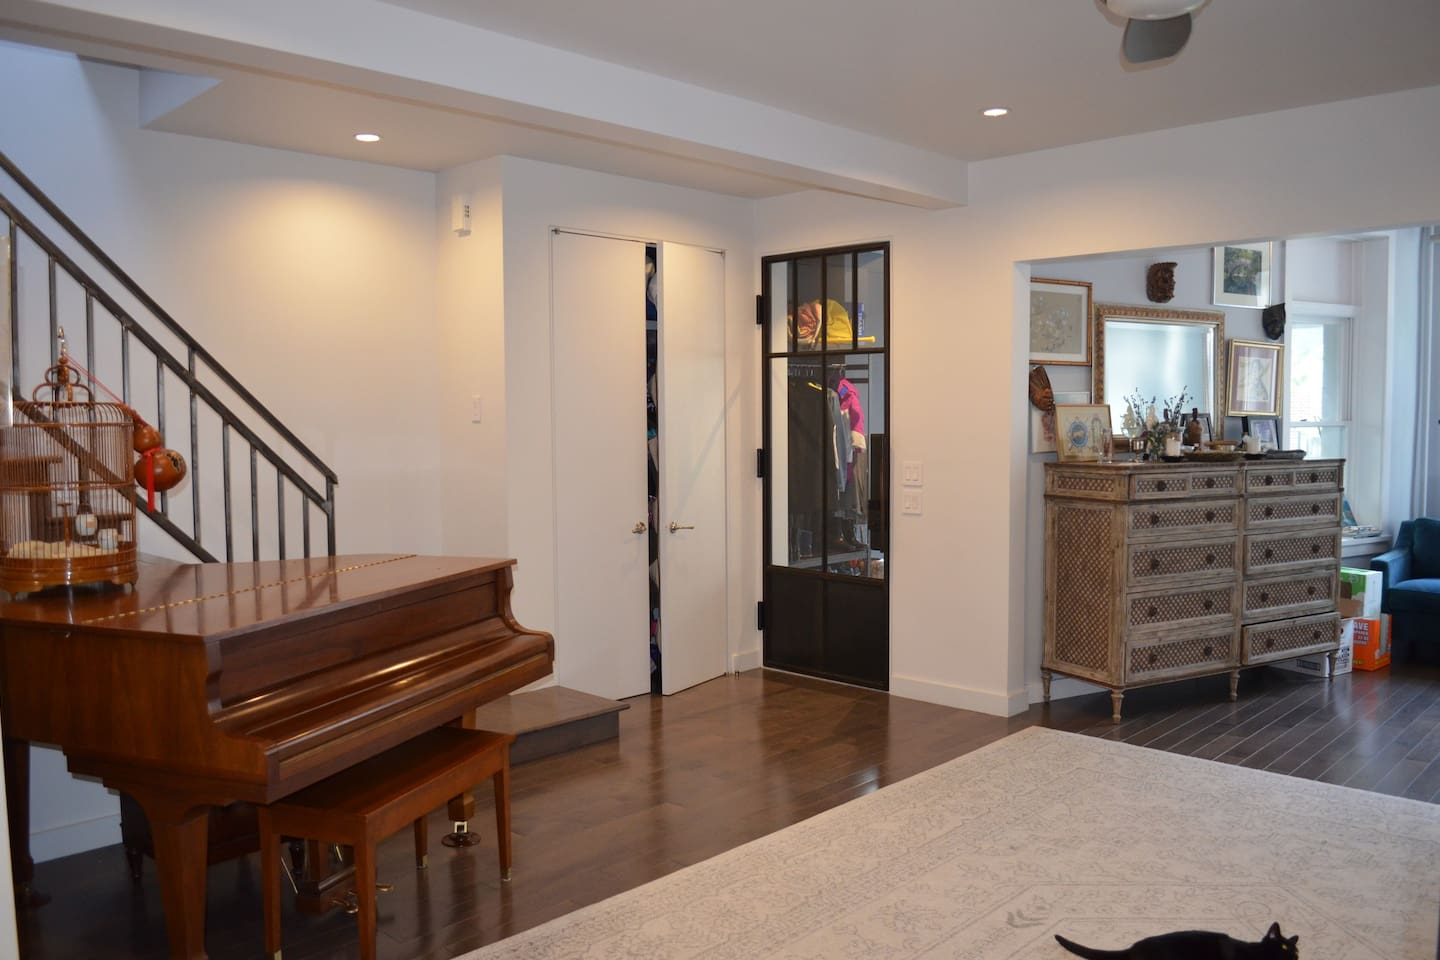 Entryway into our home, stairs to bedrooms & baby grand piano.